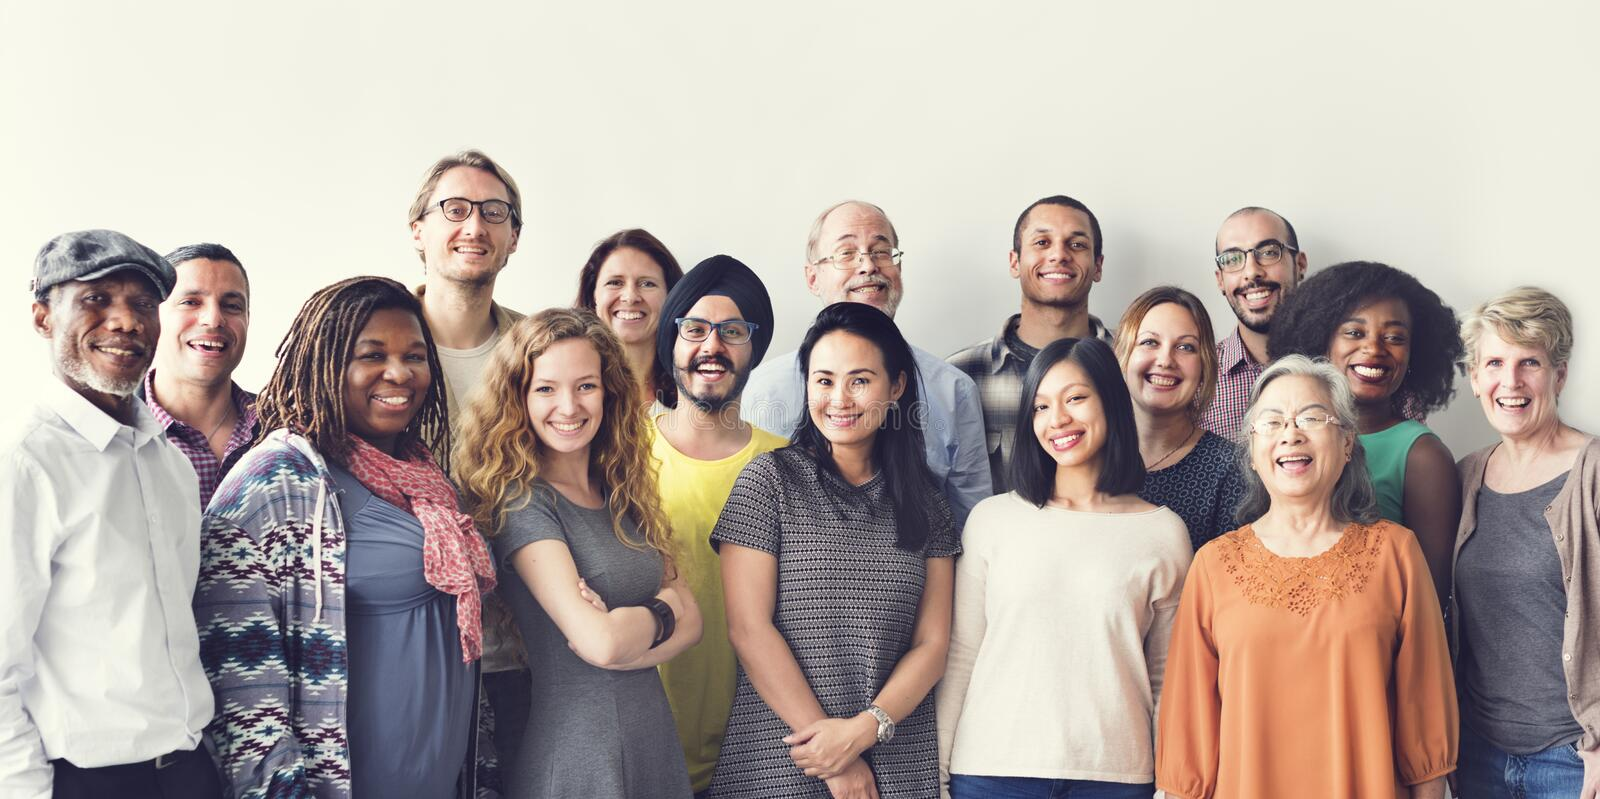 Diversity People Group Team Union Concept royalty free stock photo